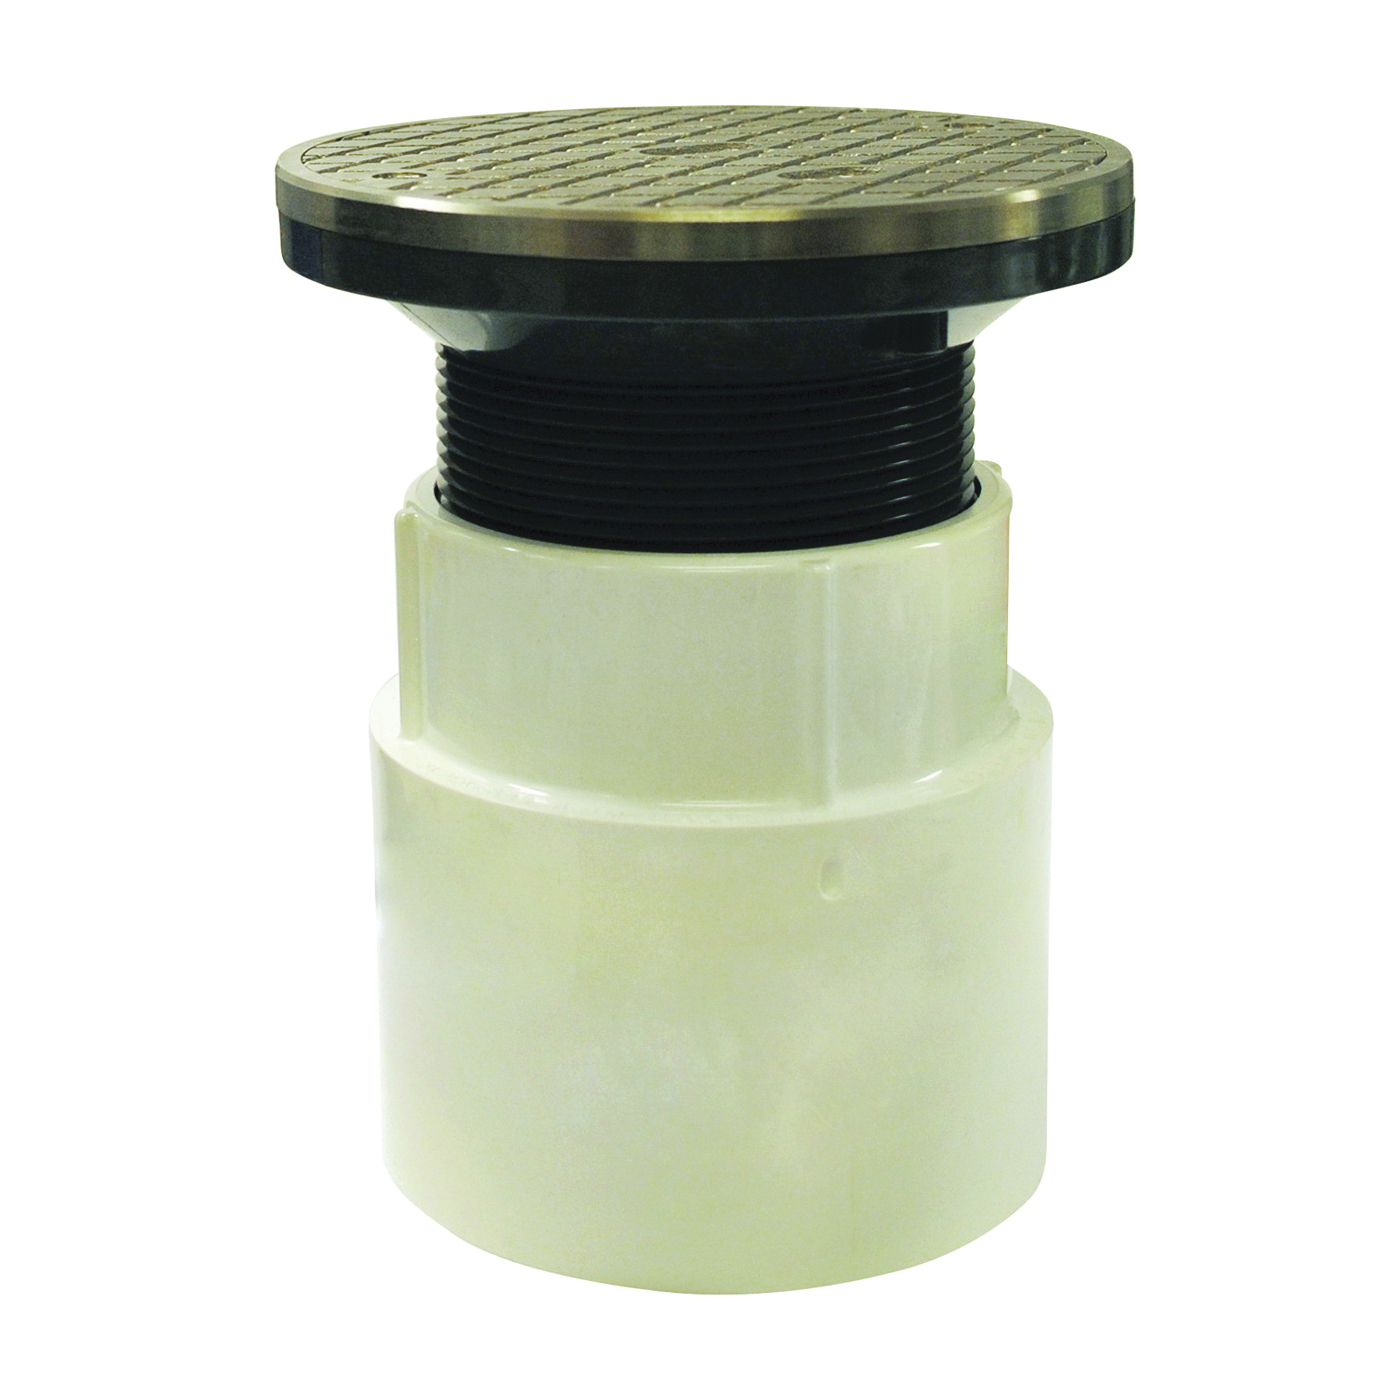 Picture of Oatey 74168 Cleanout Adapter, 4 in, PVC